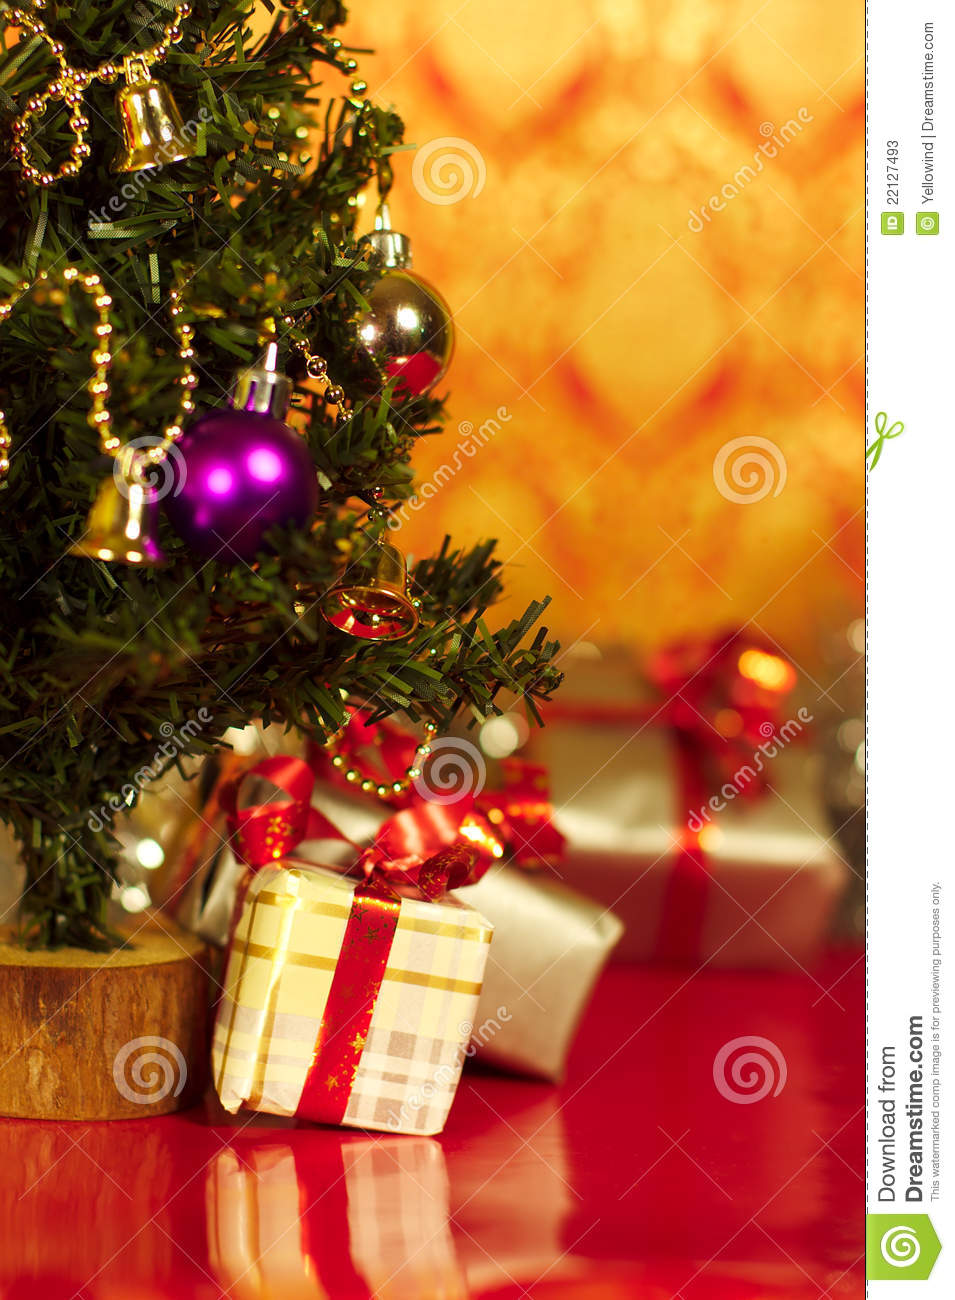 Download Christmas Presents Or Gifts Under Tree Vertical Stock Image